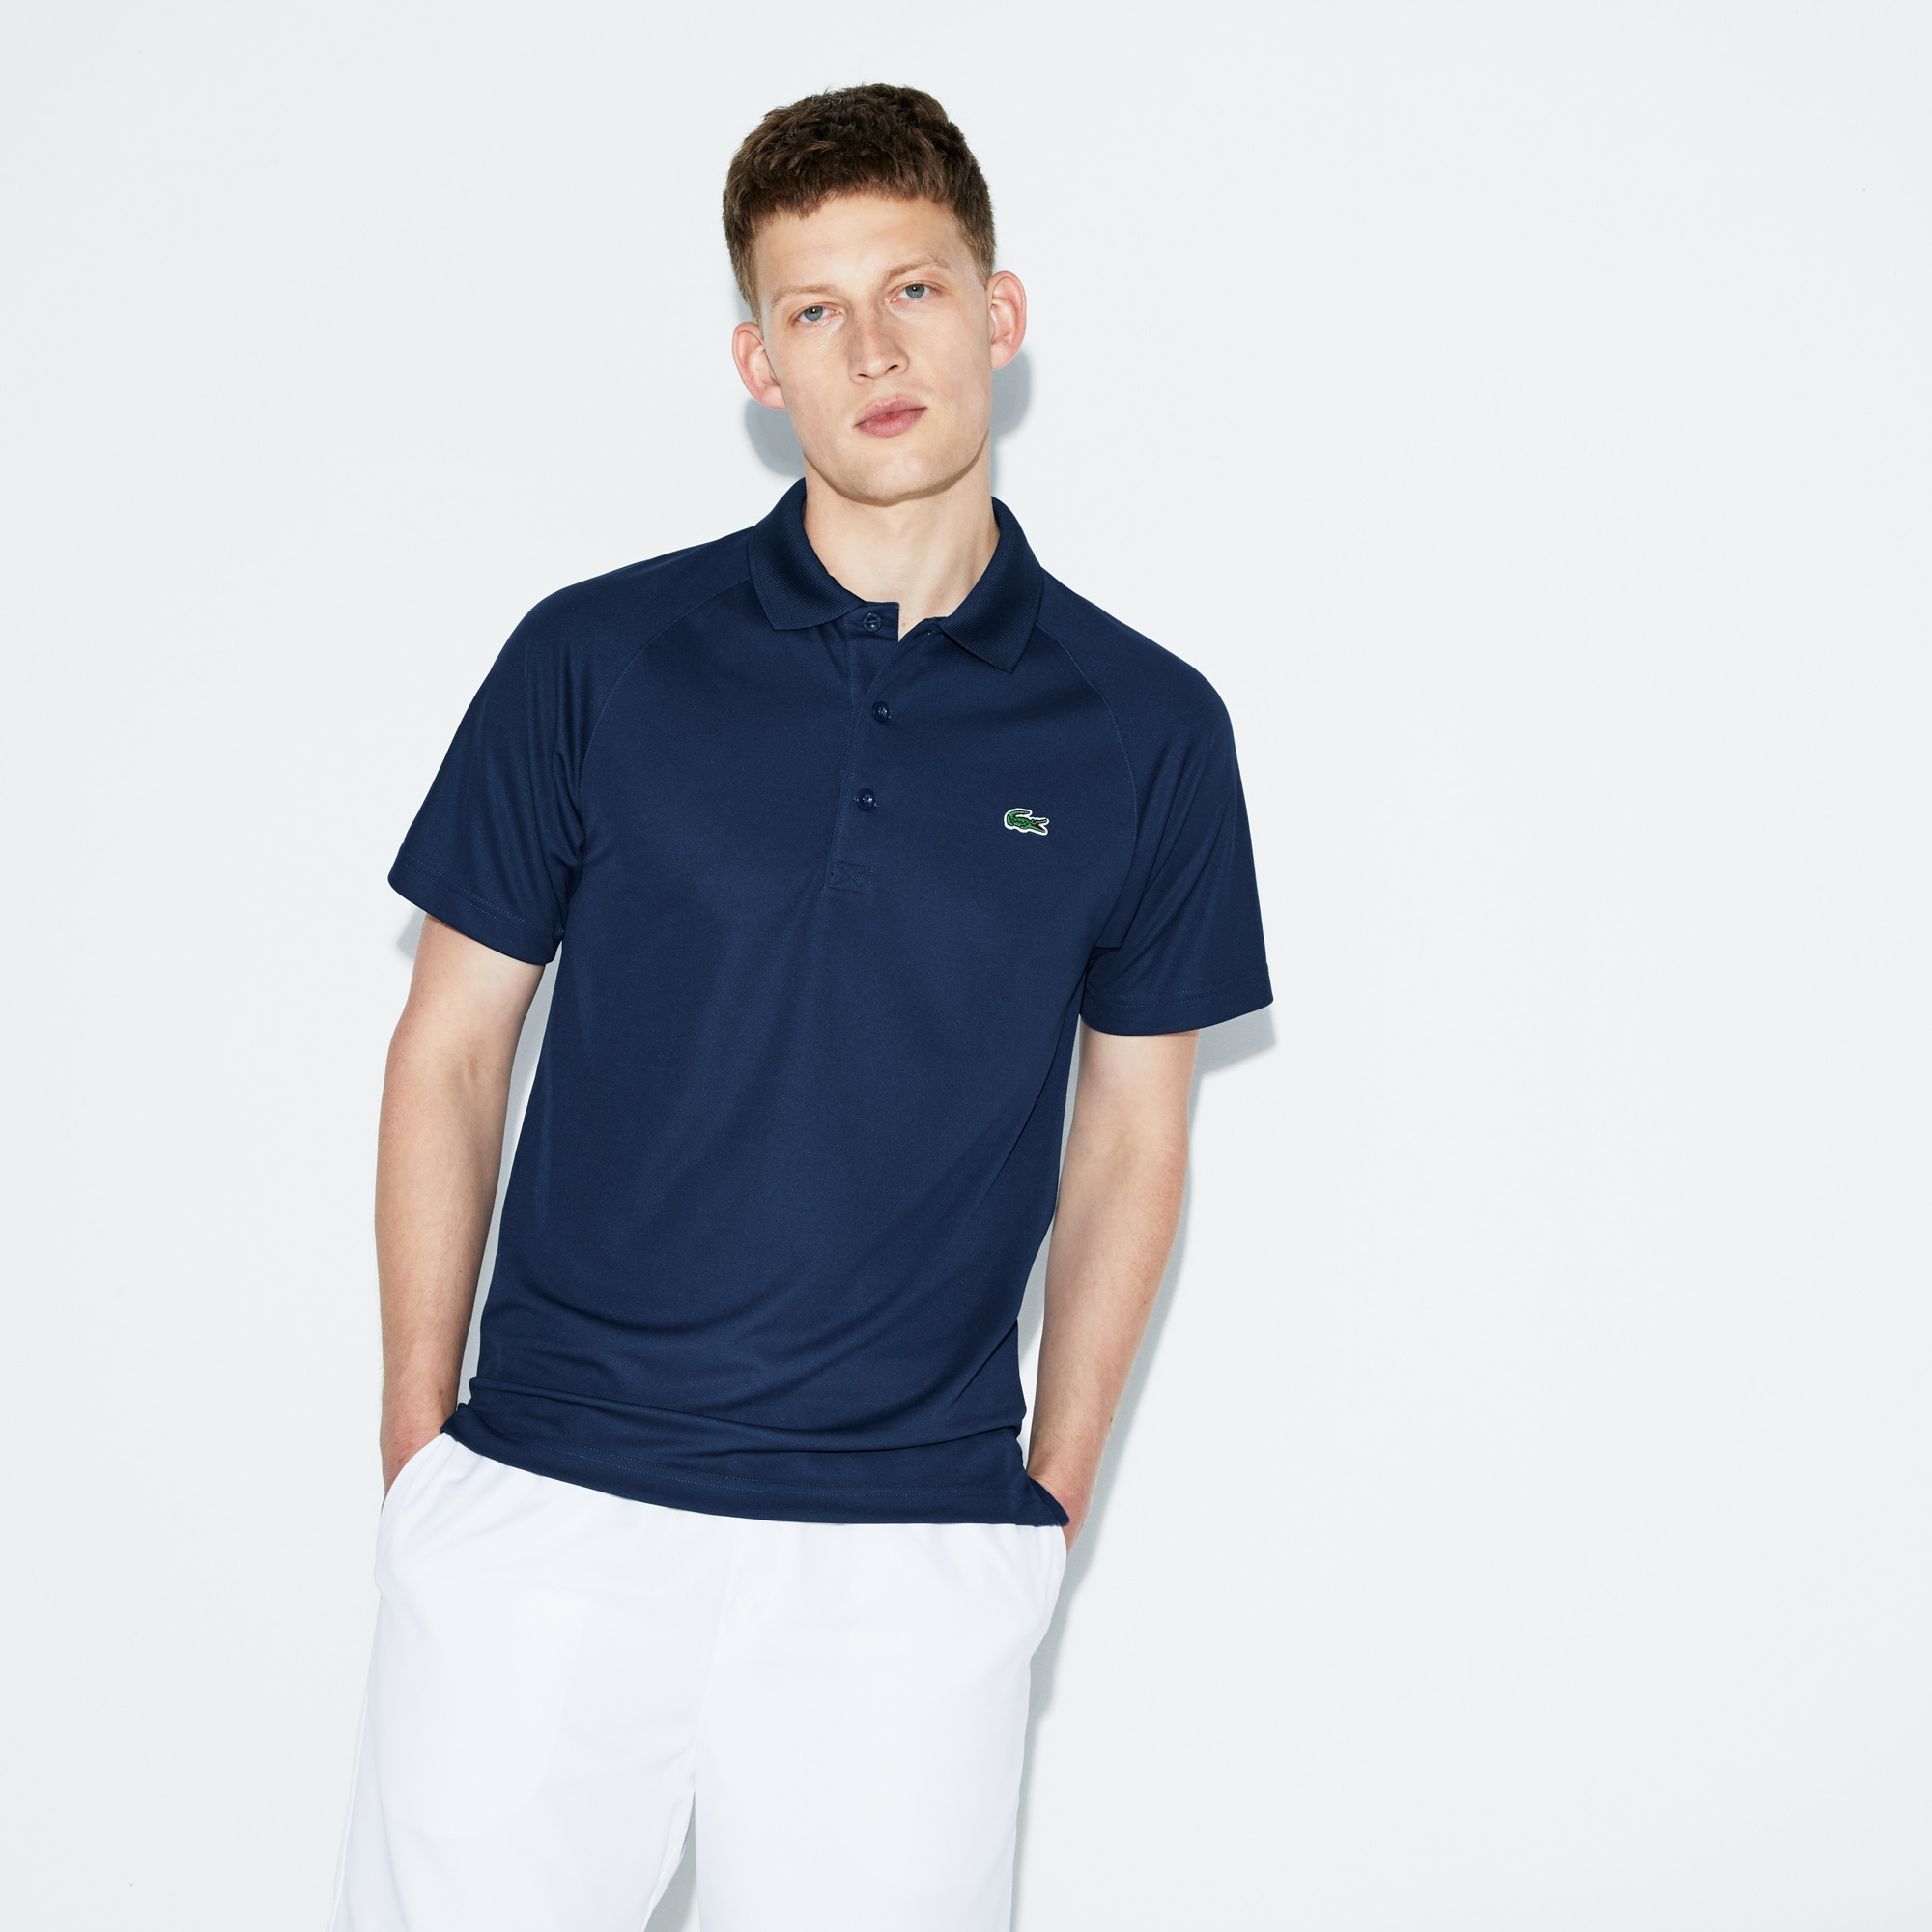 Men's SPORT Technical Piqué Tennis Polo